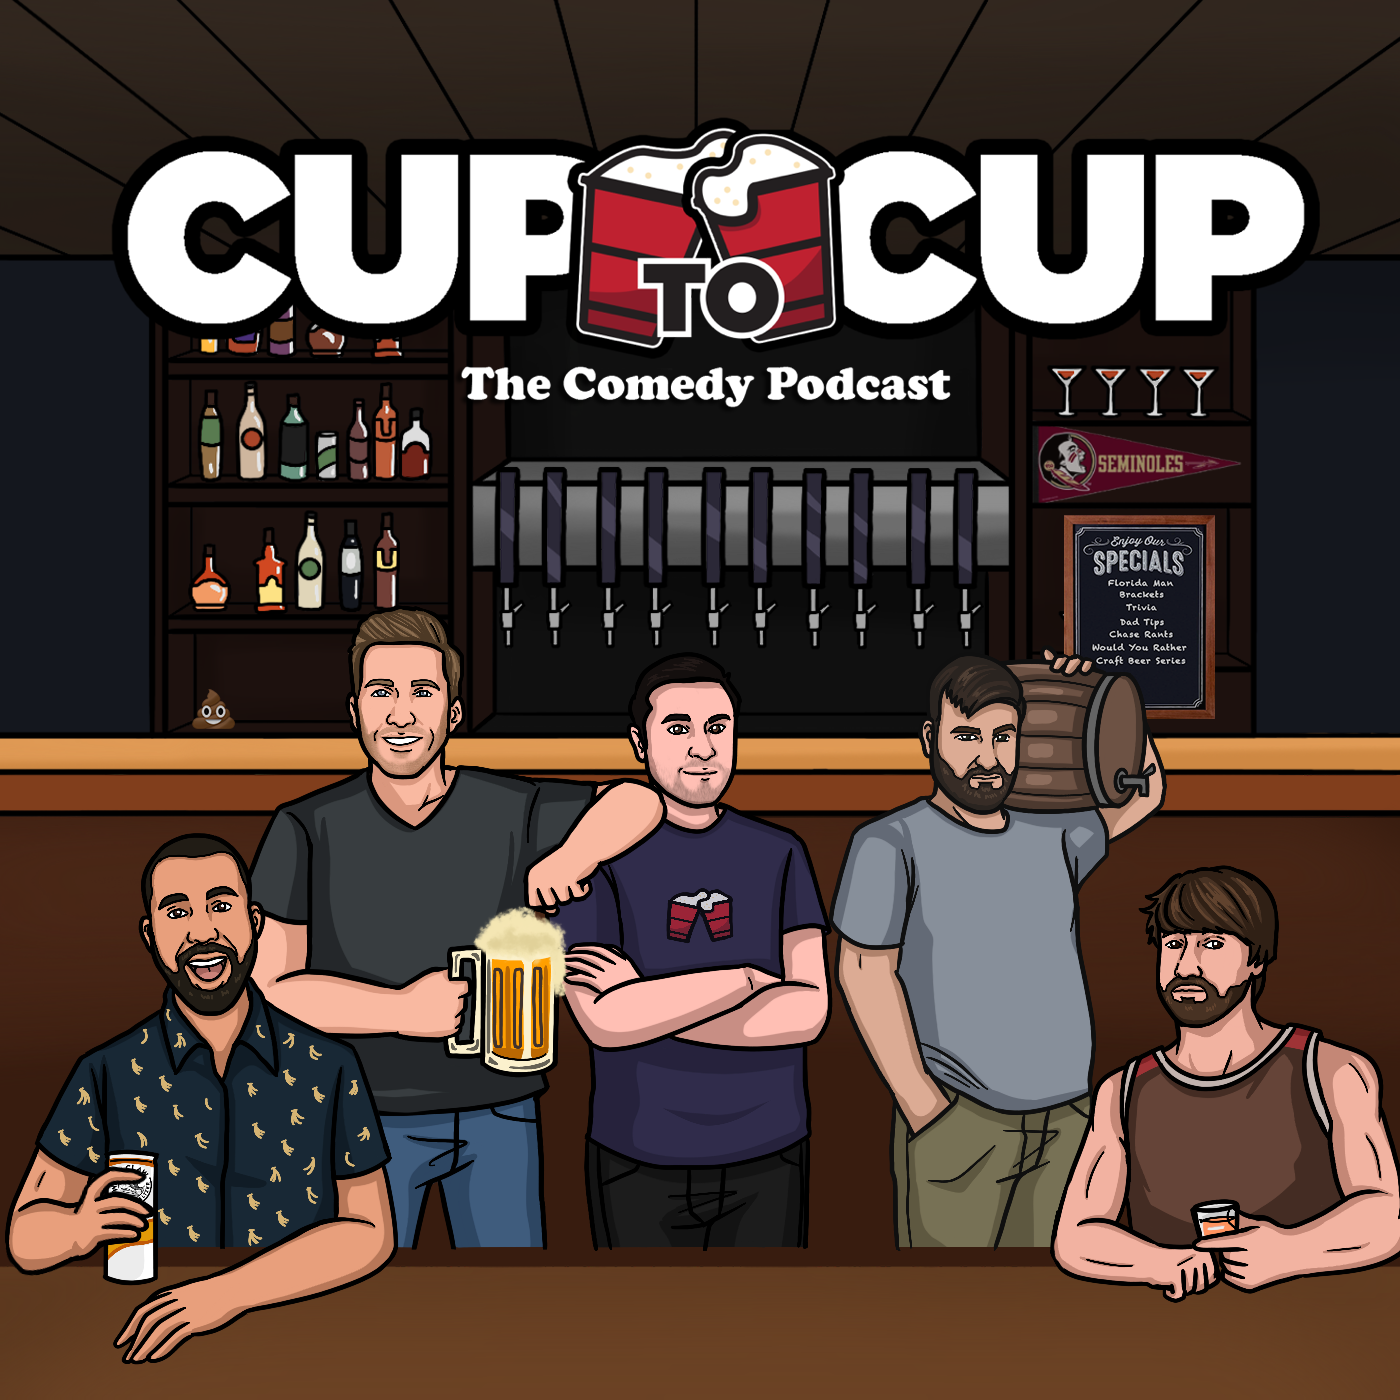 Cup to Cup | The Comedy Podcast